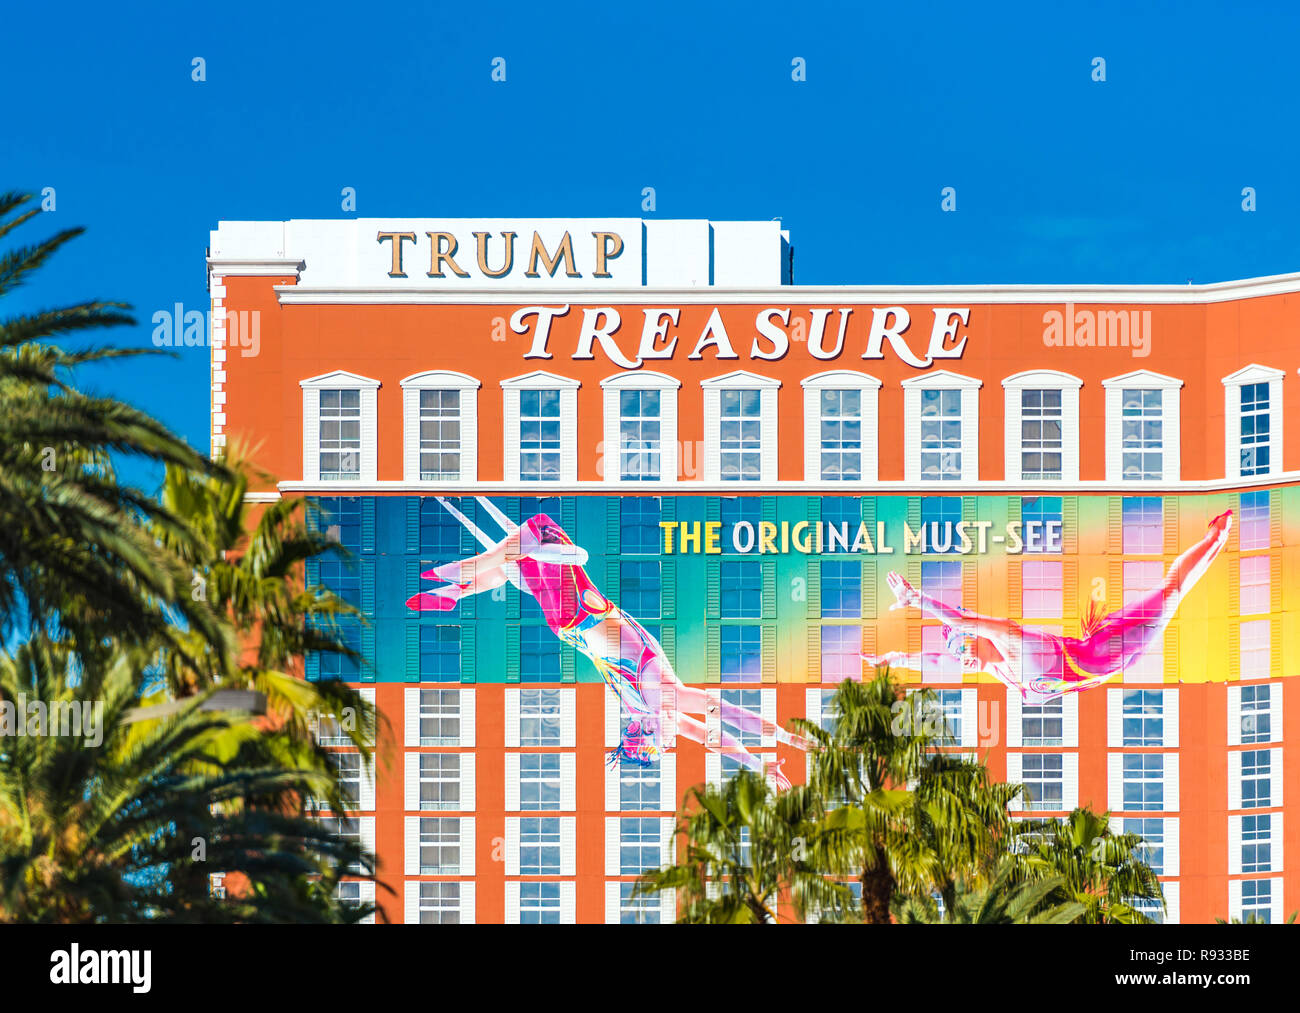 LAS VEGAS, USA - JANUARY 31, 2018: View of the facade of the hotel building Trump Treasure. Isolated on blue background Stock Photo